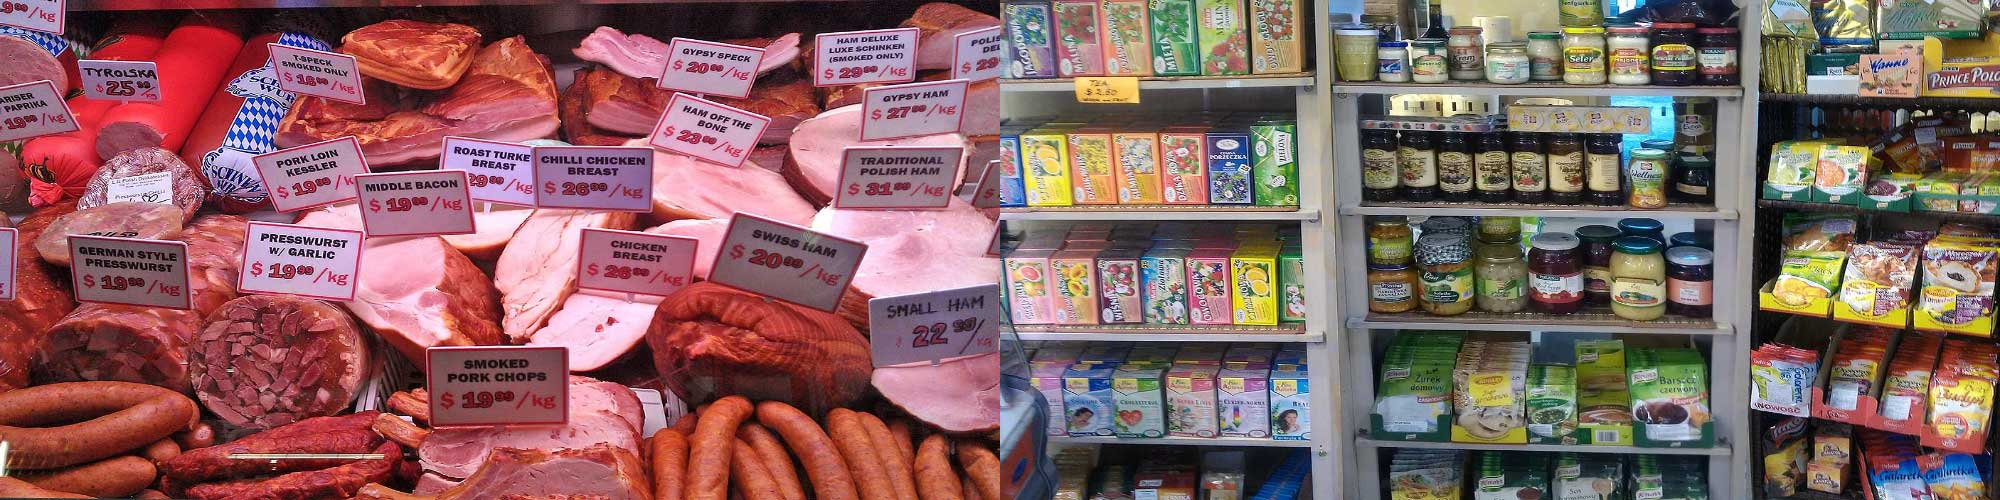 Polish & European Deli Products